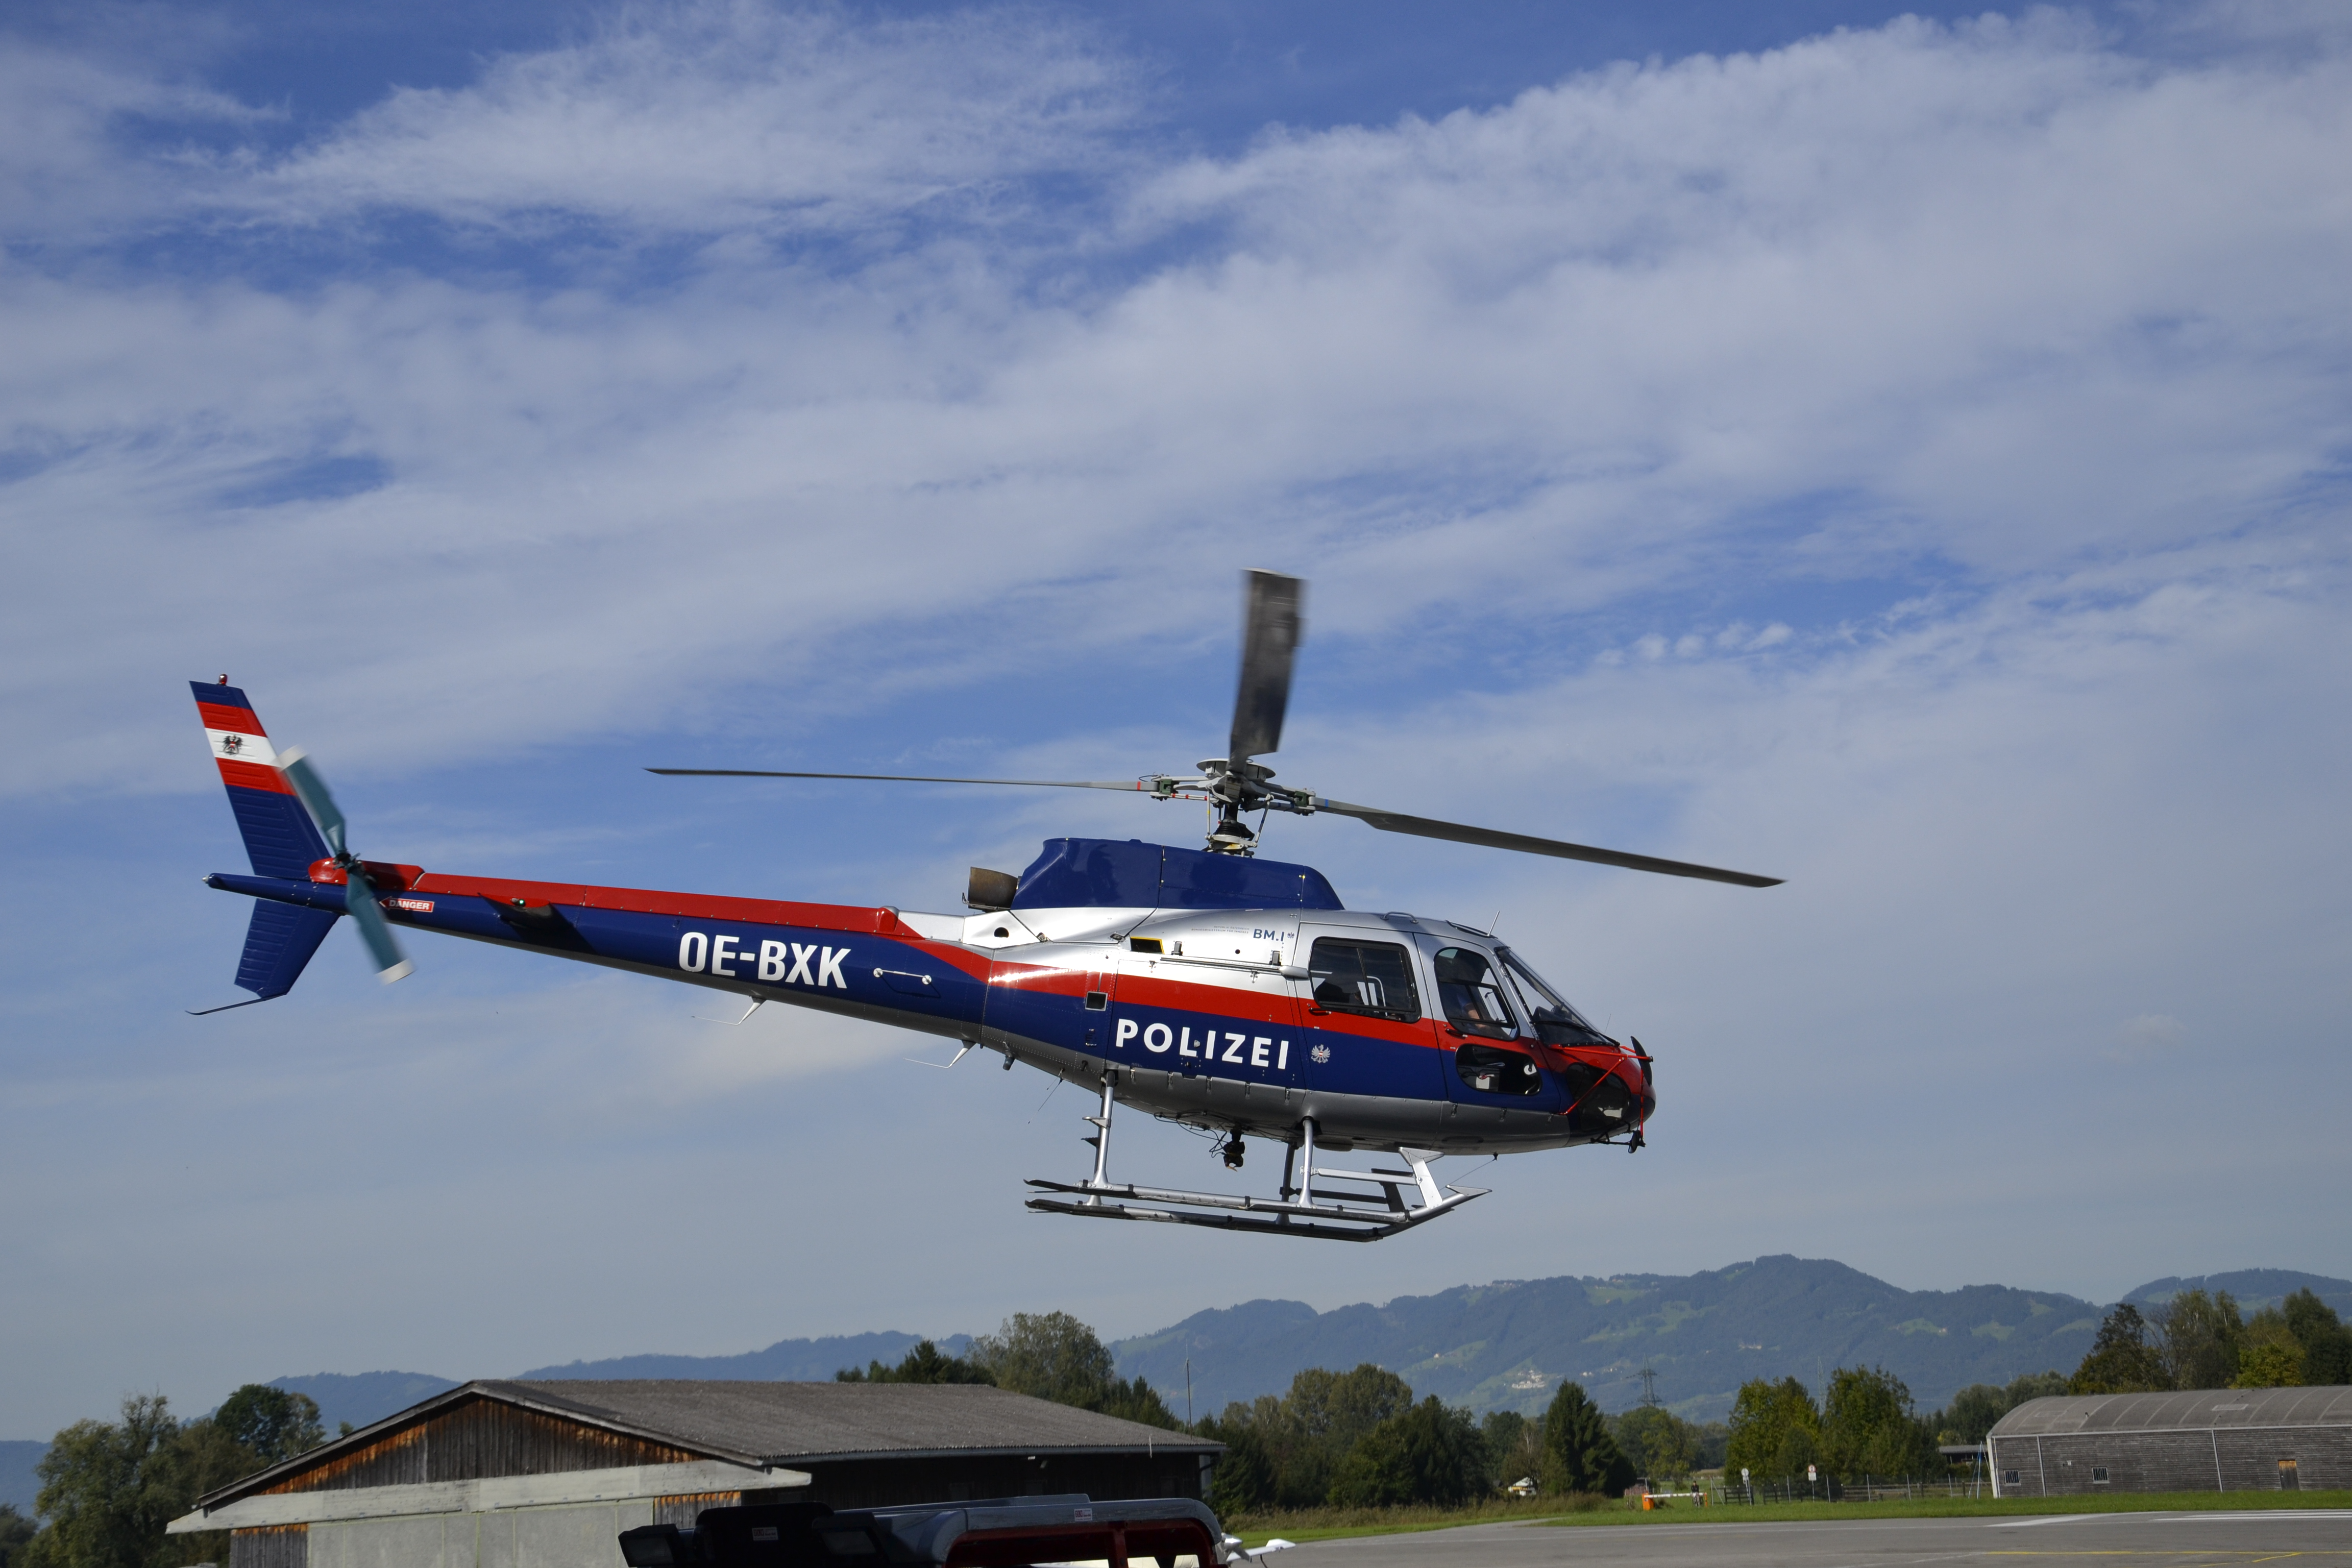 Helicopter of the Austrian Federal police